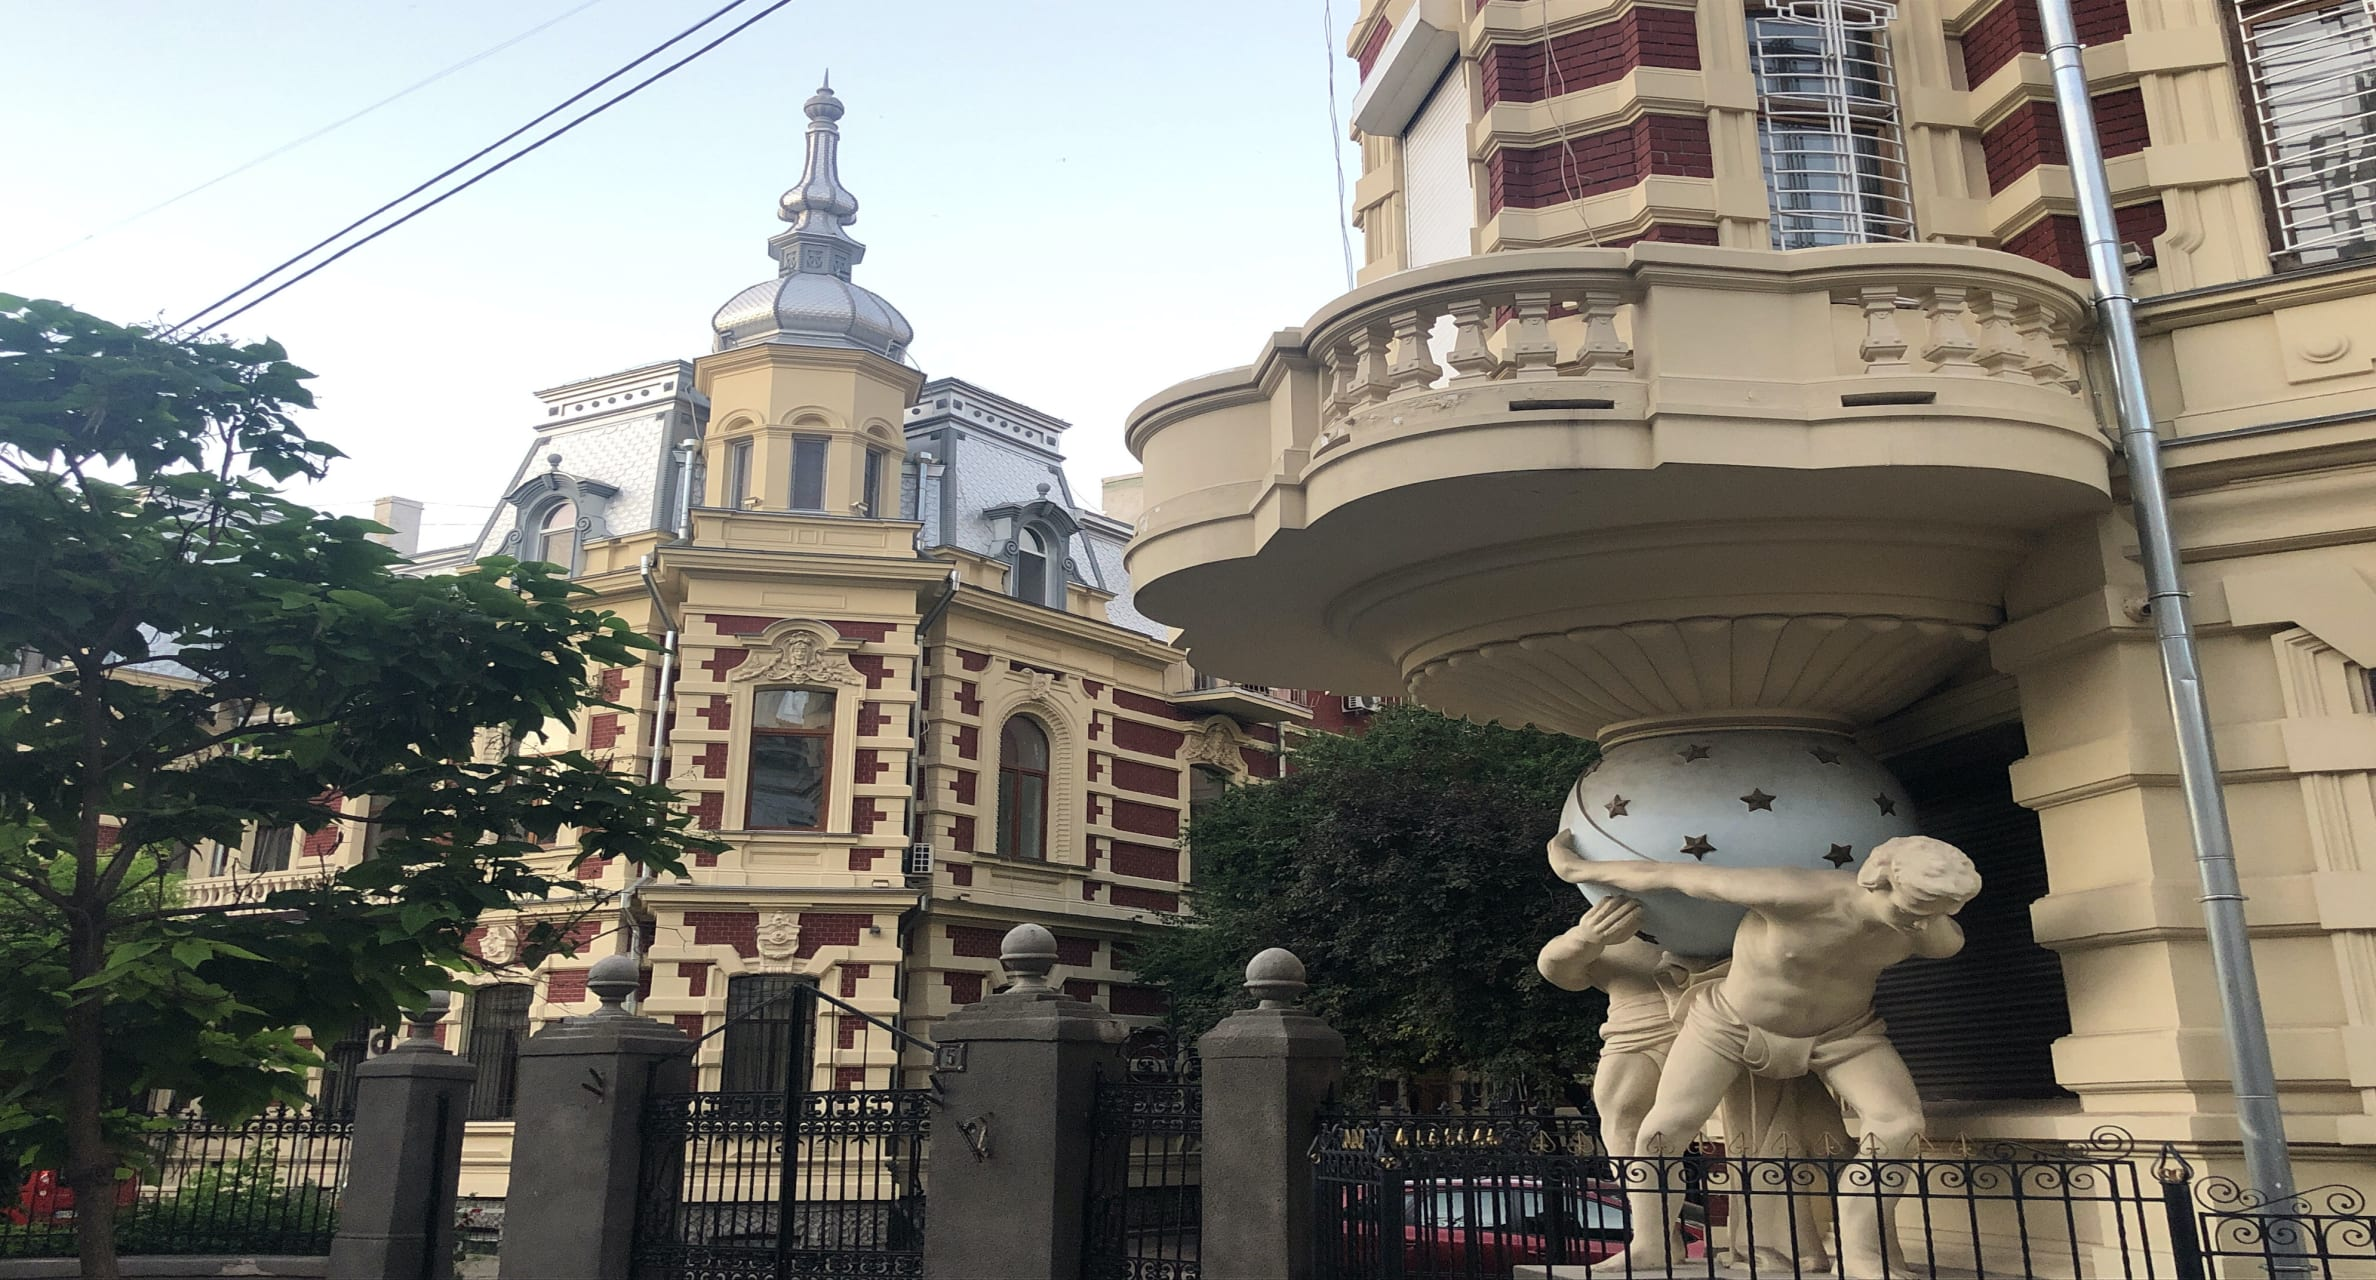 Odessa - Odessa's Old Town: Journey into the City's Fascinating Past